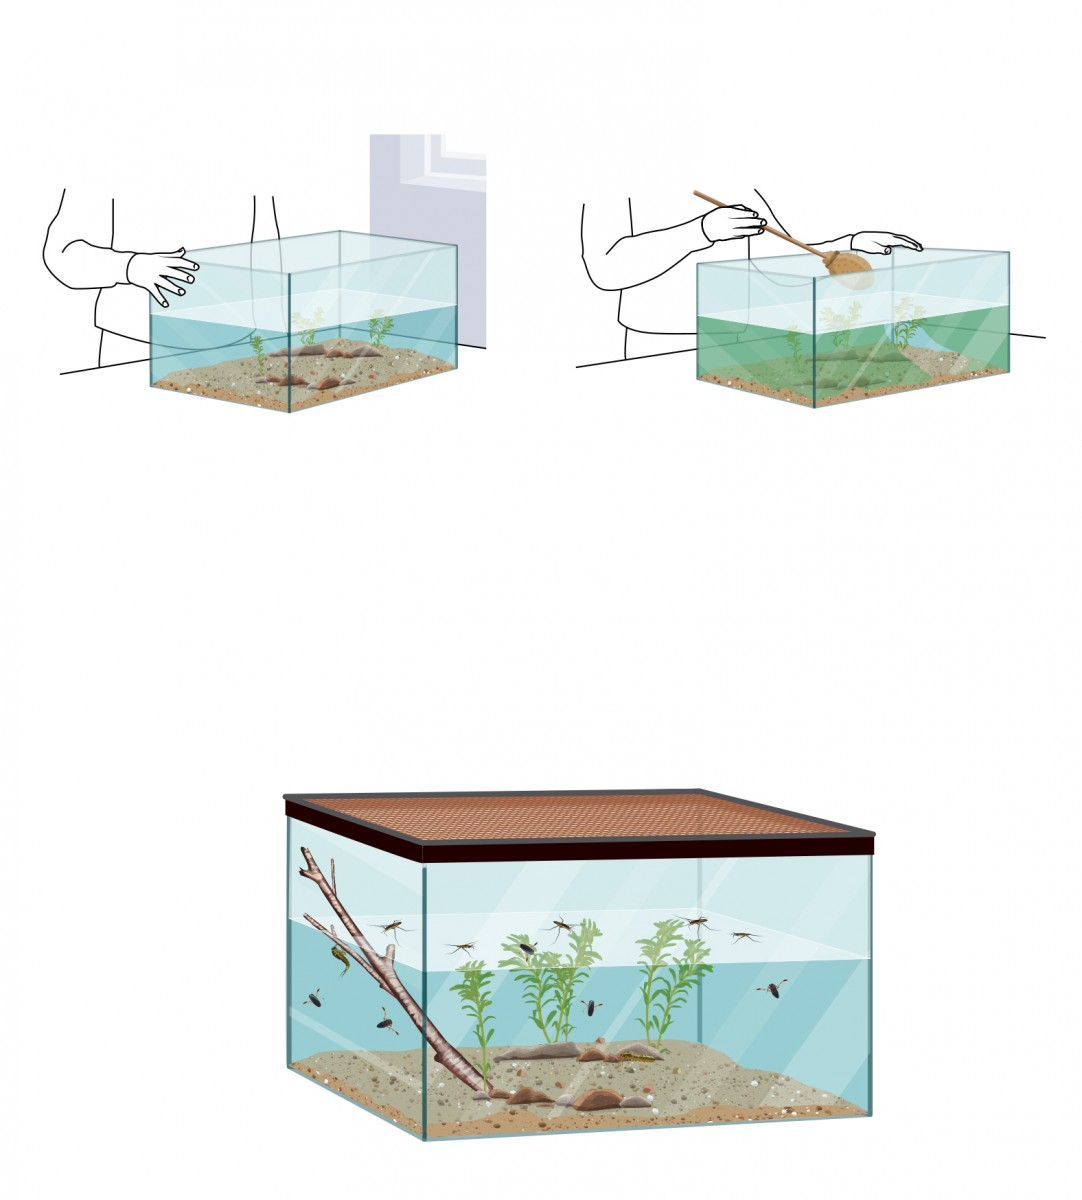 Making an Insect Aquarium